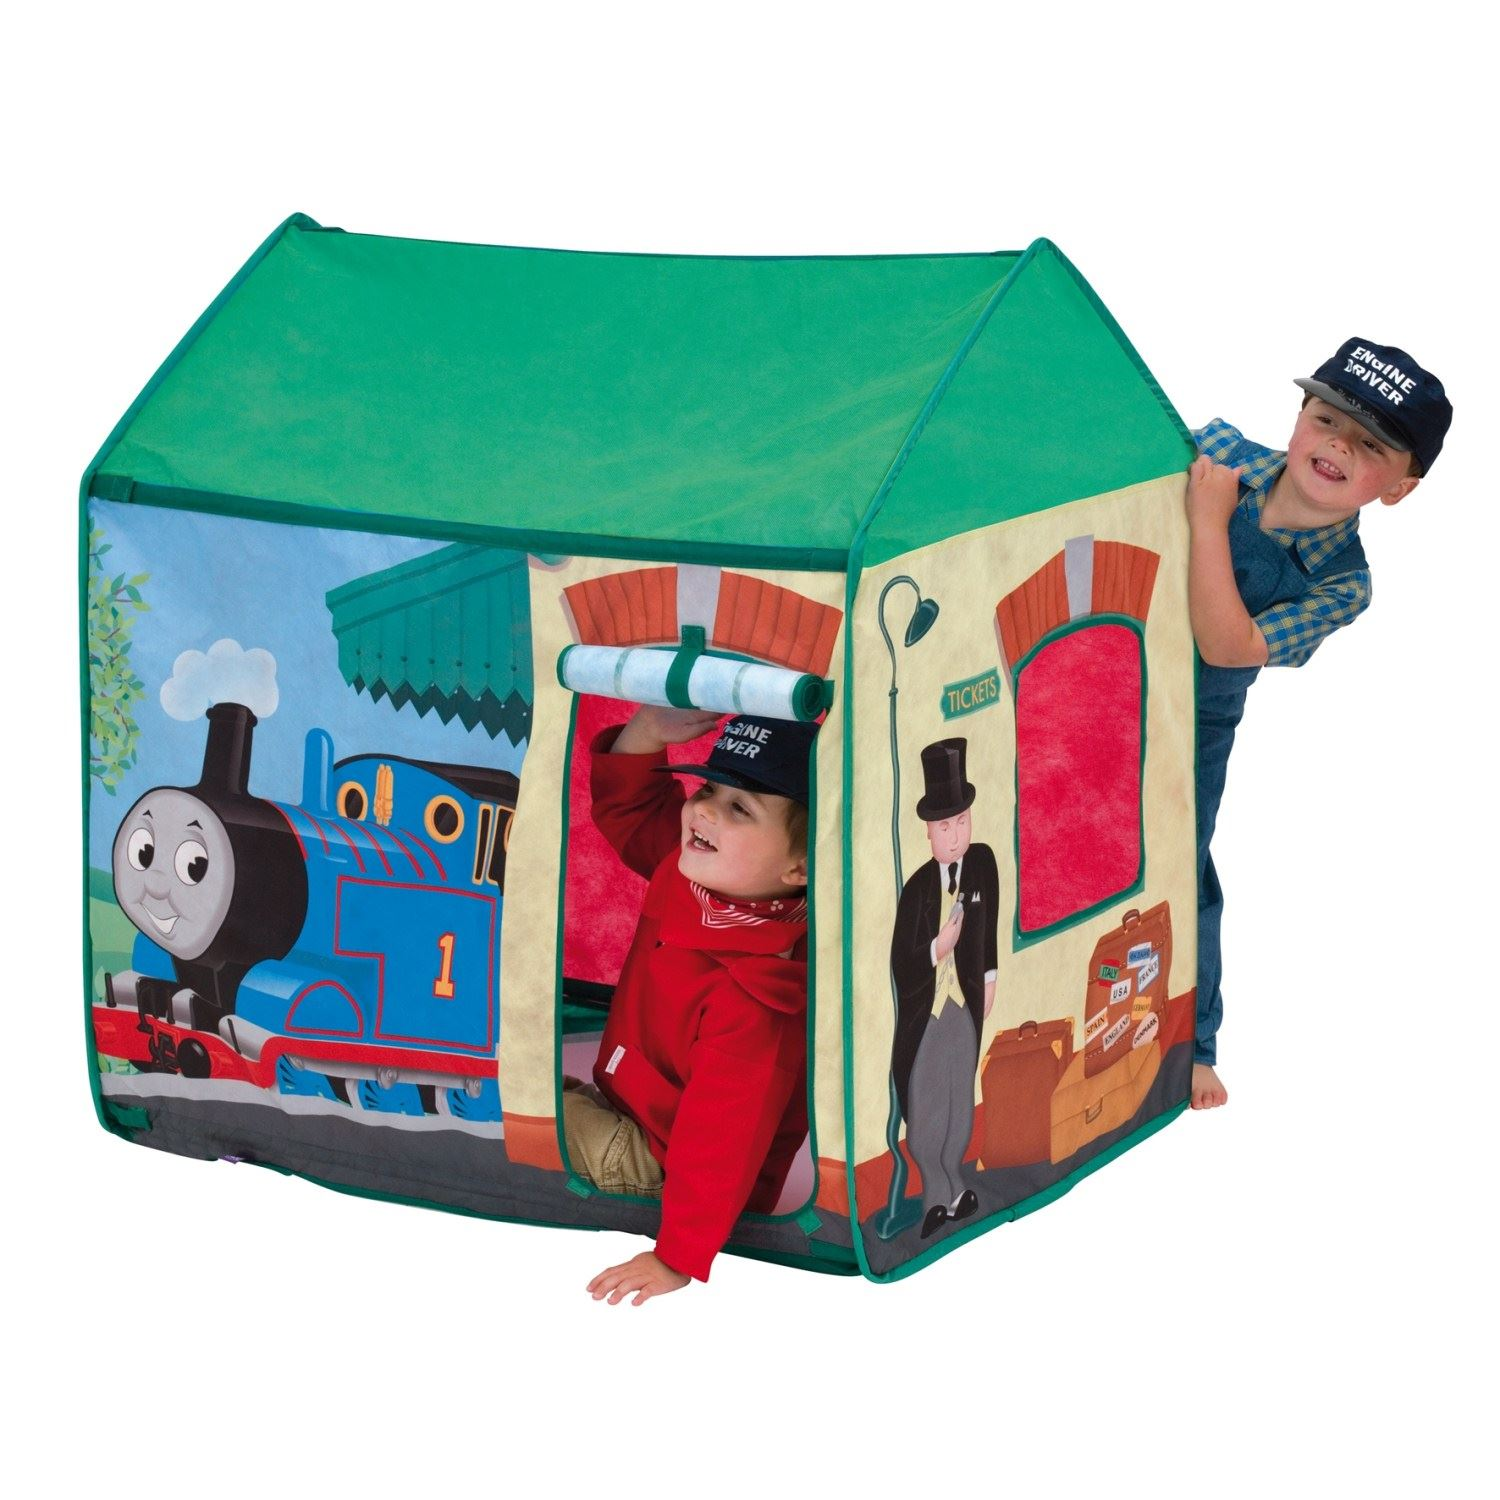 CHILDRENS-CHARACTER-POP-UP-PLAY-TENTS-WENDY-HOUSES-  sc 1 st  eBay & CHILDRENS CHARACTER POP UP PLAY TENTS WENDY HOUSES INDOOR OUTDOOR ...